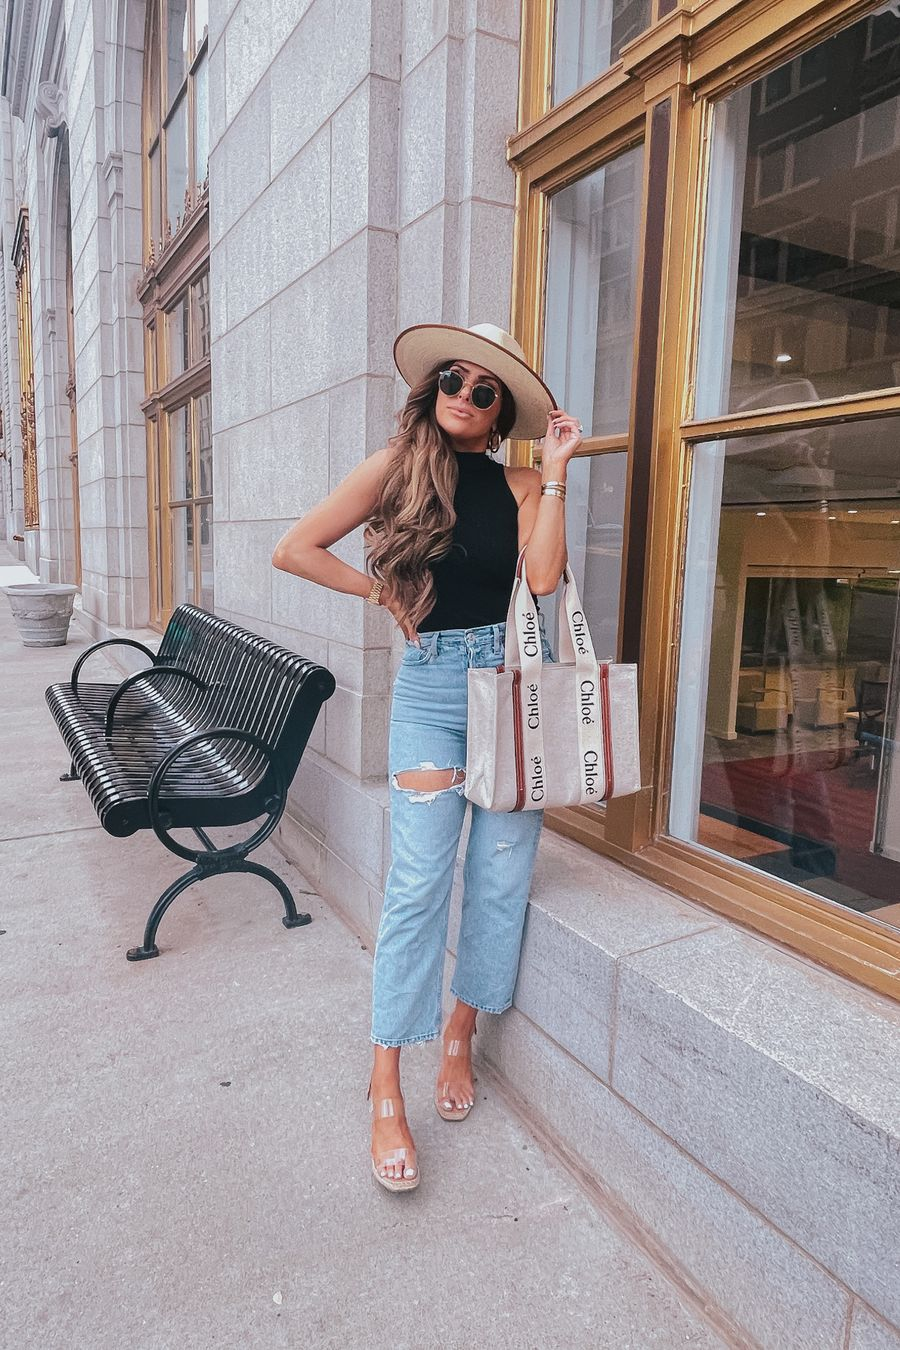 Summer Outfit by popular US fashion blog, The Sweetest Thing: image of Emily Gemma standing outside in front of a building with gold framed windows and wearing a cream fedora hat, BP mock neck tank, Agolde jeans, Steve Madden clear strap espadrilles, and holding a Chloe tote bag.